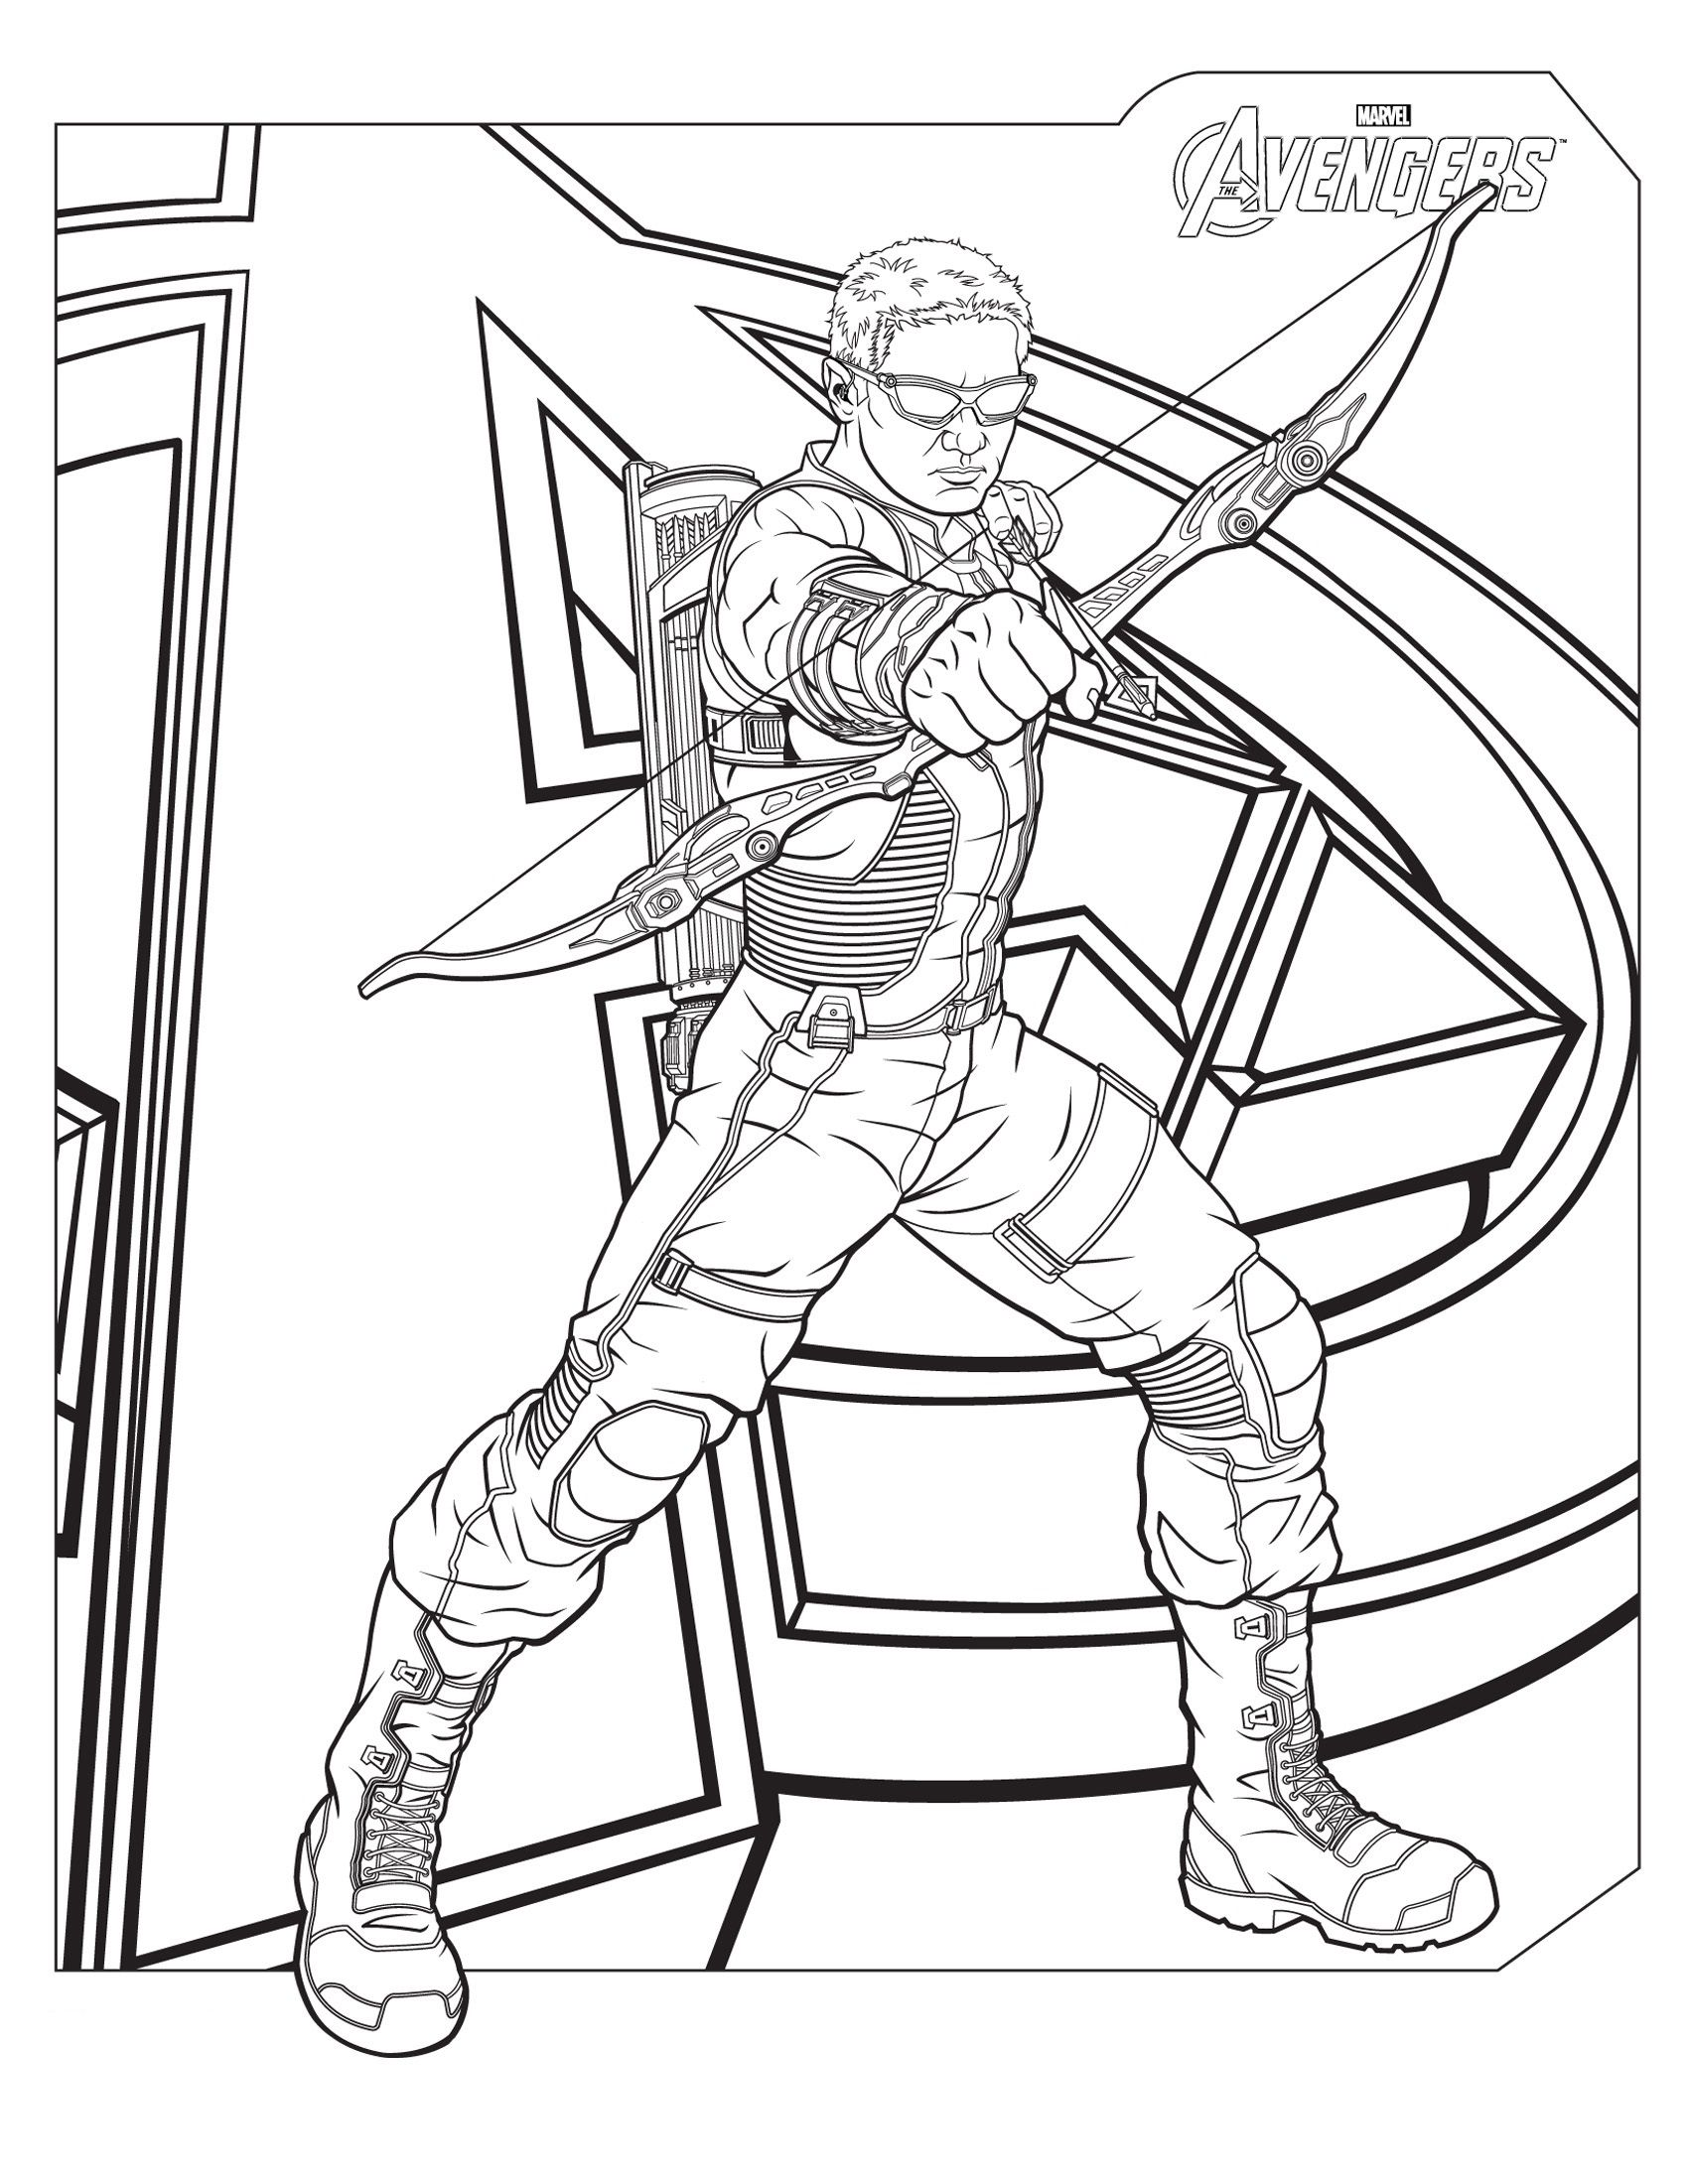 Hawkeye Coloring Pages Marvel is part of Avengers coloring pages - If your kids love The Avengers, this collection will really make your kids happy and excited! We have an assortment of free kids printable that kids will love